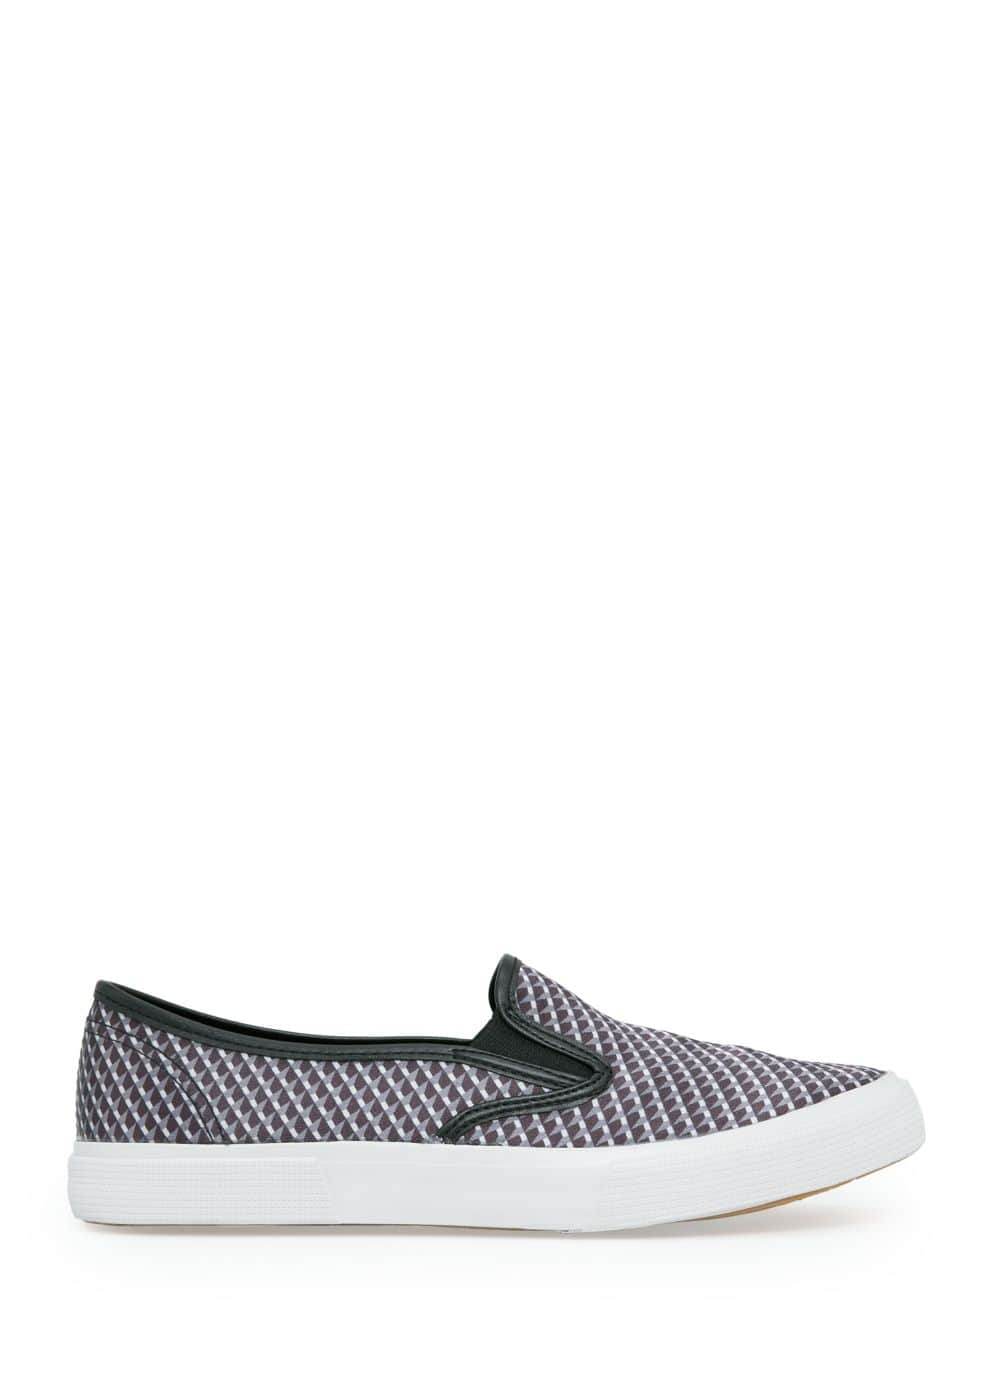 Printed slip-on sneakers